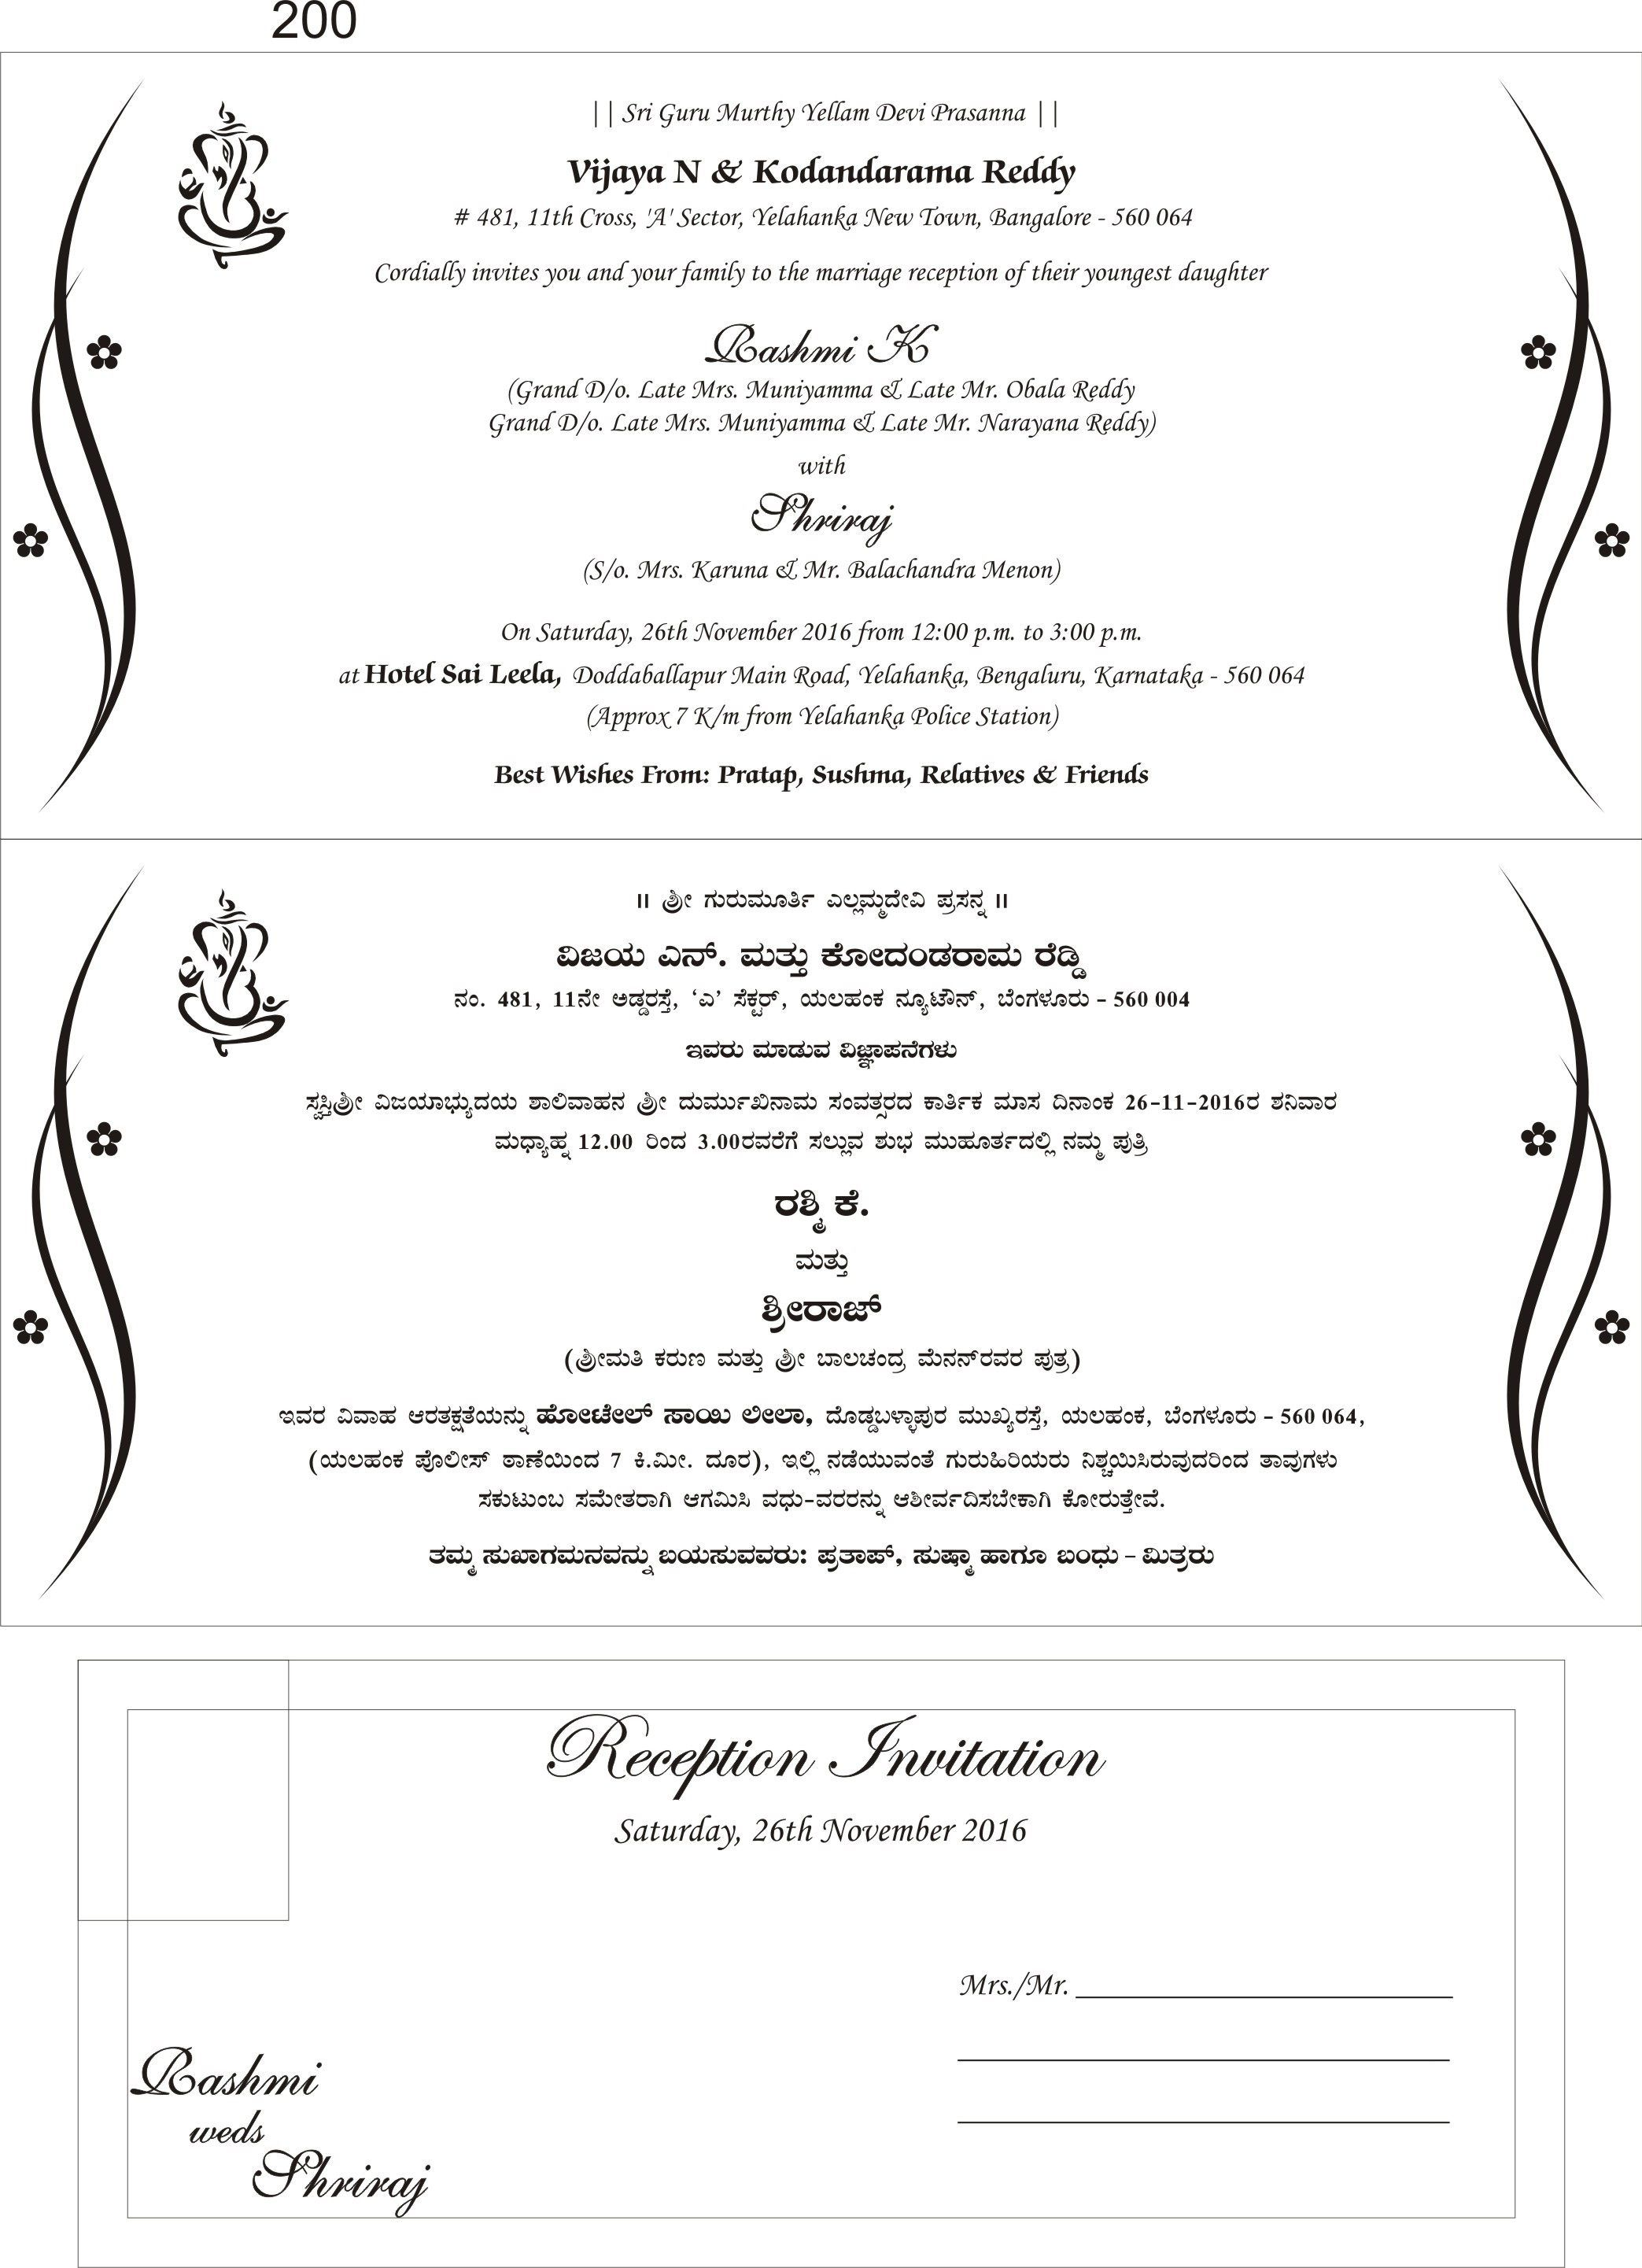 15 Best Of Friends Marriage Invitation Card Matter In Kannada Image Invitation Card Format Wedding Invitation Cards Wedding Card Quotes